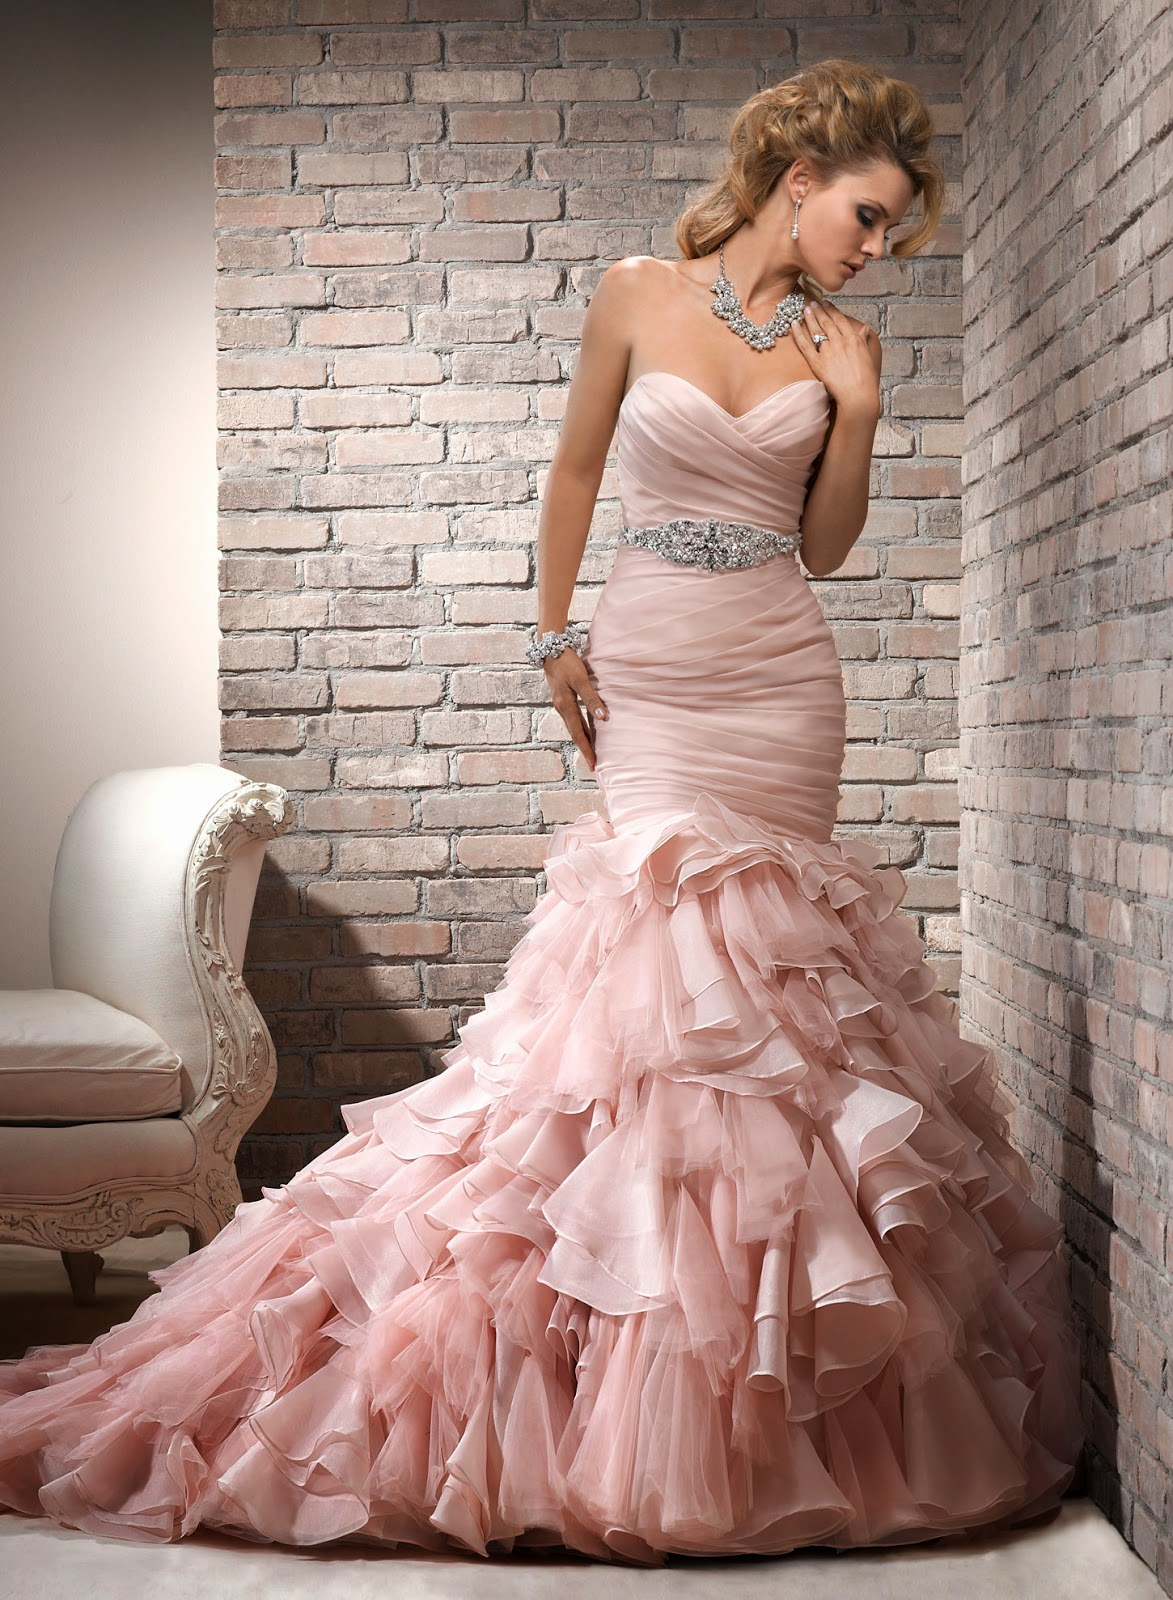 Images Of Blush Wedding Dresses : Beautiful bridal blush pink wedding dress